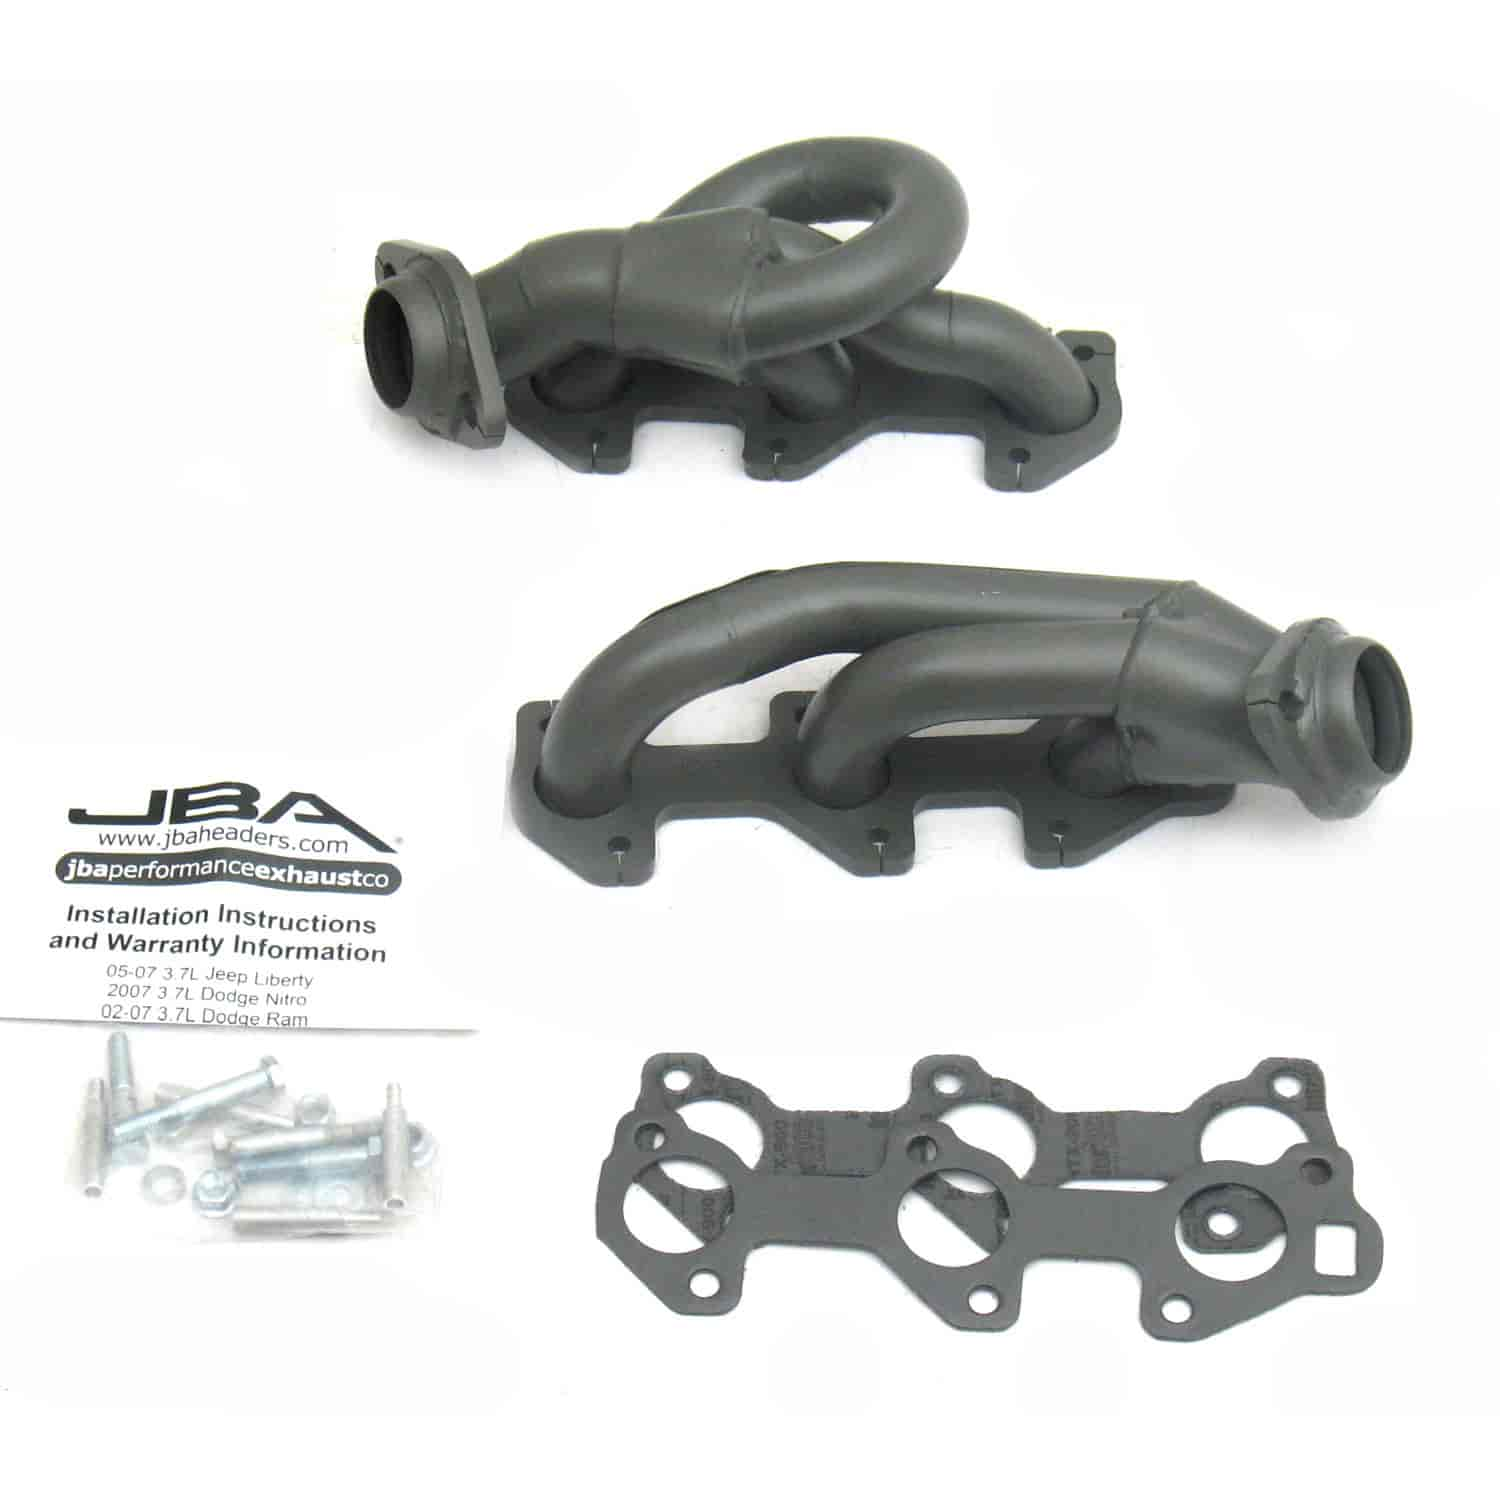 JBA 1931SJT - JBA Mopar Shorty Headers